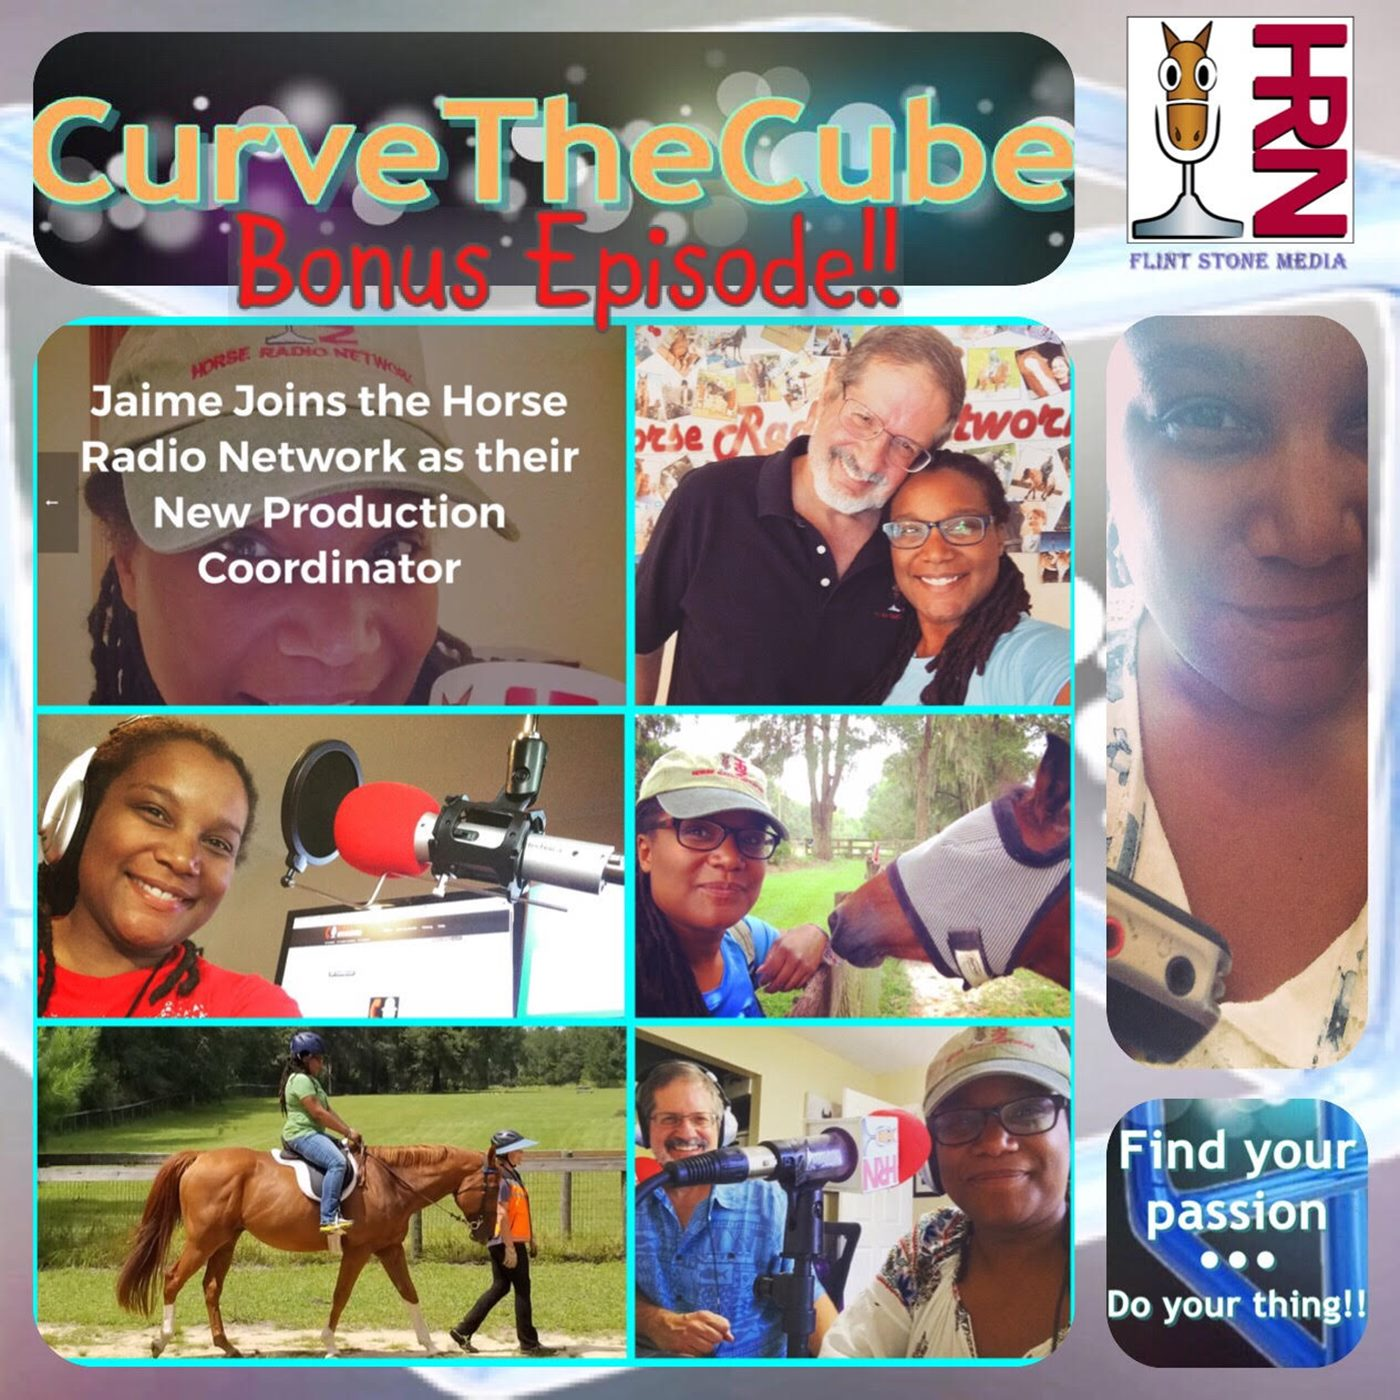 Bonus Curve the Cube Podcast - Jaime Joins the Horse Radio Network and International Podcast Day